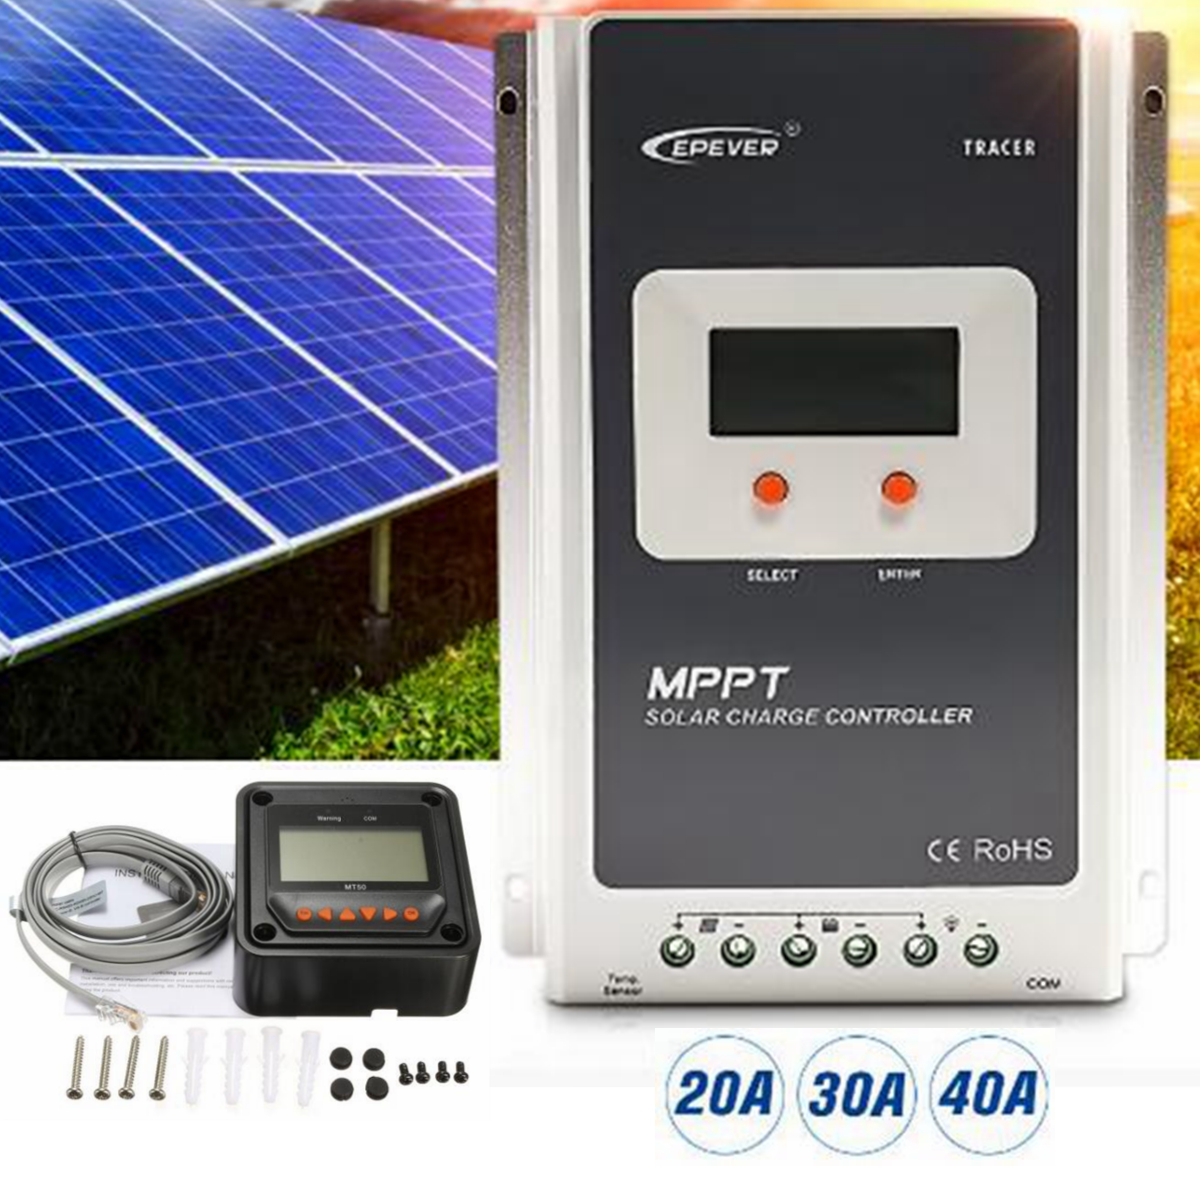 12/24V MPPT Solar Charge Controller RS-485 Regulator 40/30/20A with MT50 Black Remote Meter LCD Panel Display Design Ultra-fast aetoo spring and summer new leather handmade handmade first layer of planted tanned leather retro bag backpack bag